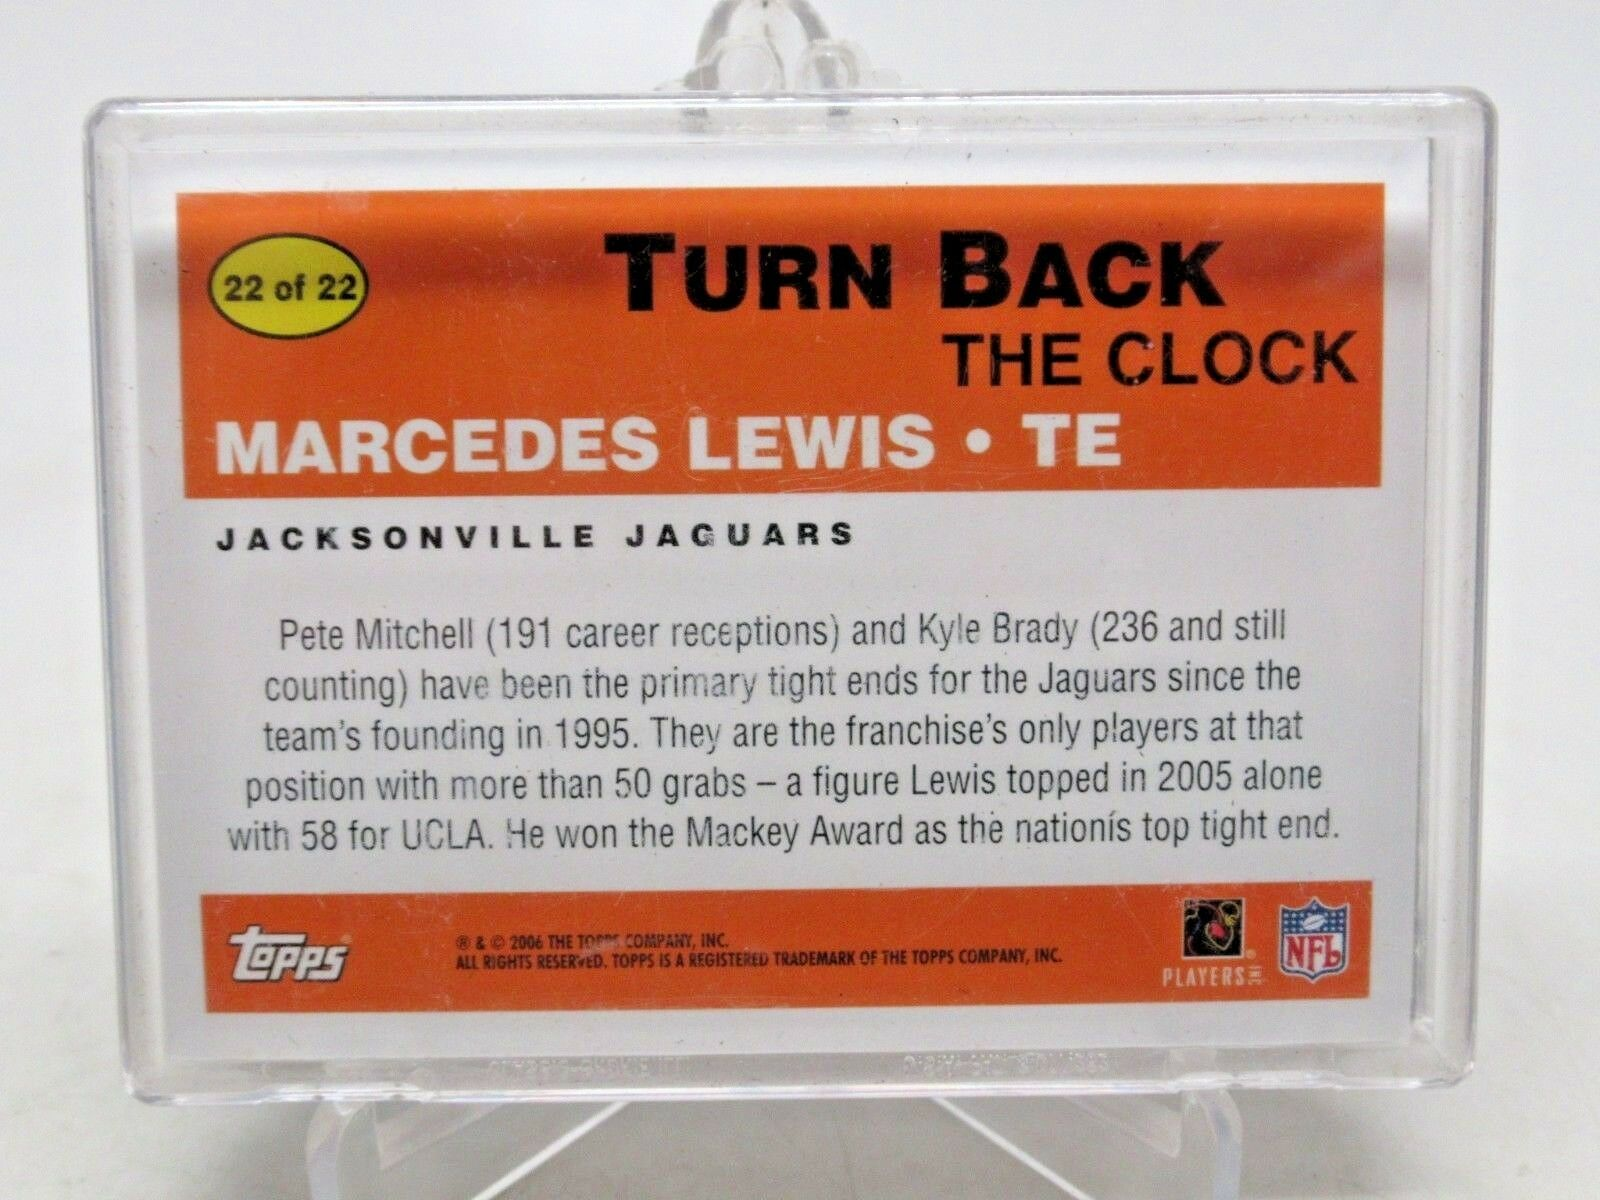 2006 Topps Football Turn Back The Clock Subset 1-22 NM/M